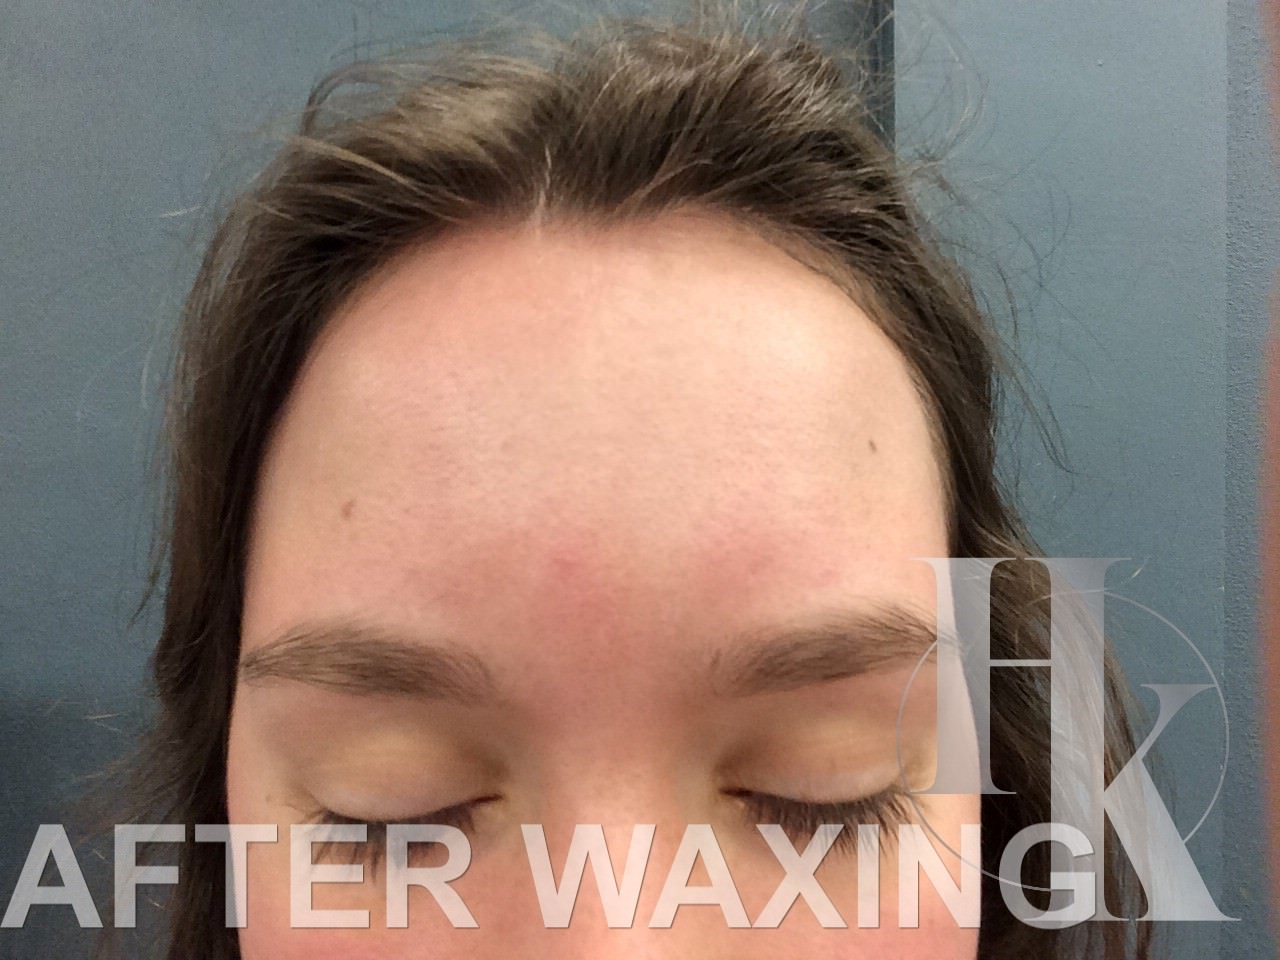 Women's Eye Brow Waxing (after)